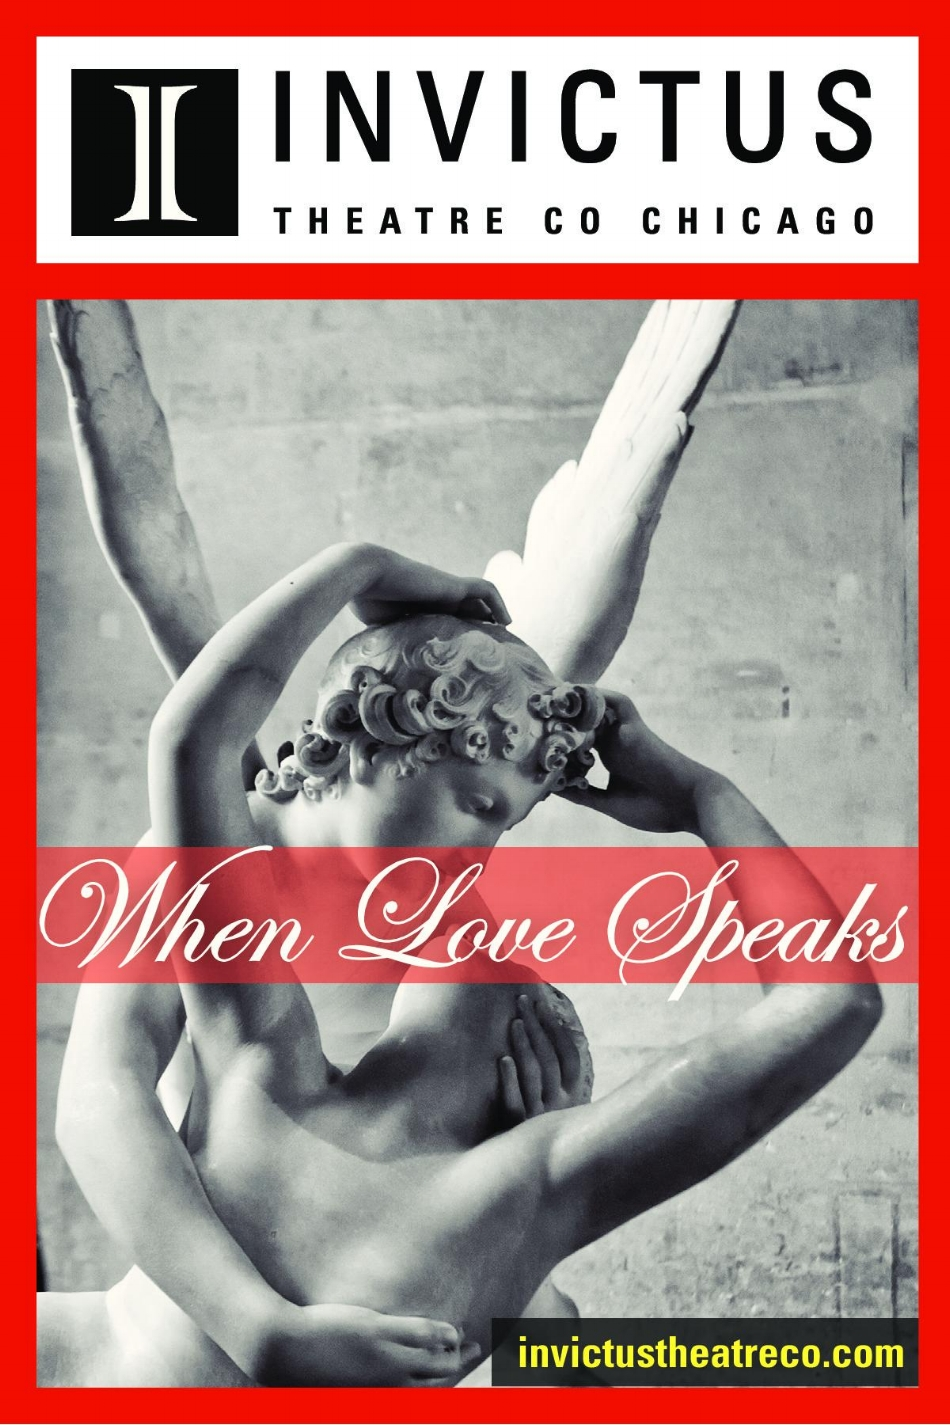 When Love Speaks - Two Performances: June 2 @ 8pm, and June 3 @ 2pmWish you to bathe your lips in rosy dews of kisses? Then come on down to Invictus Theatre Co. Chicago's